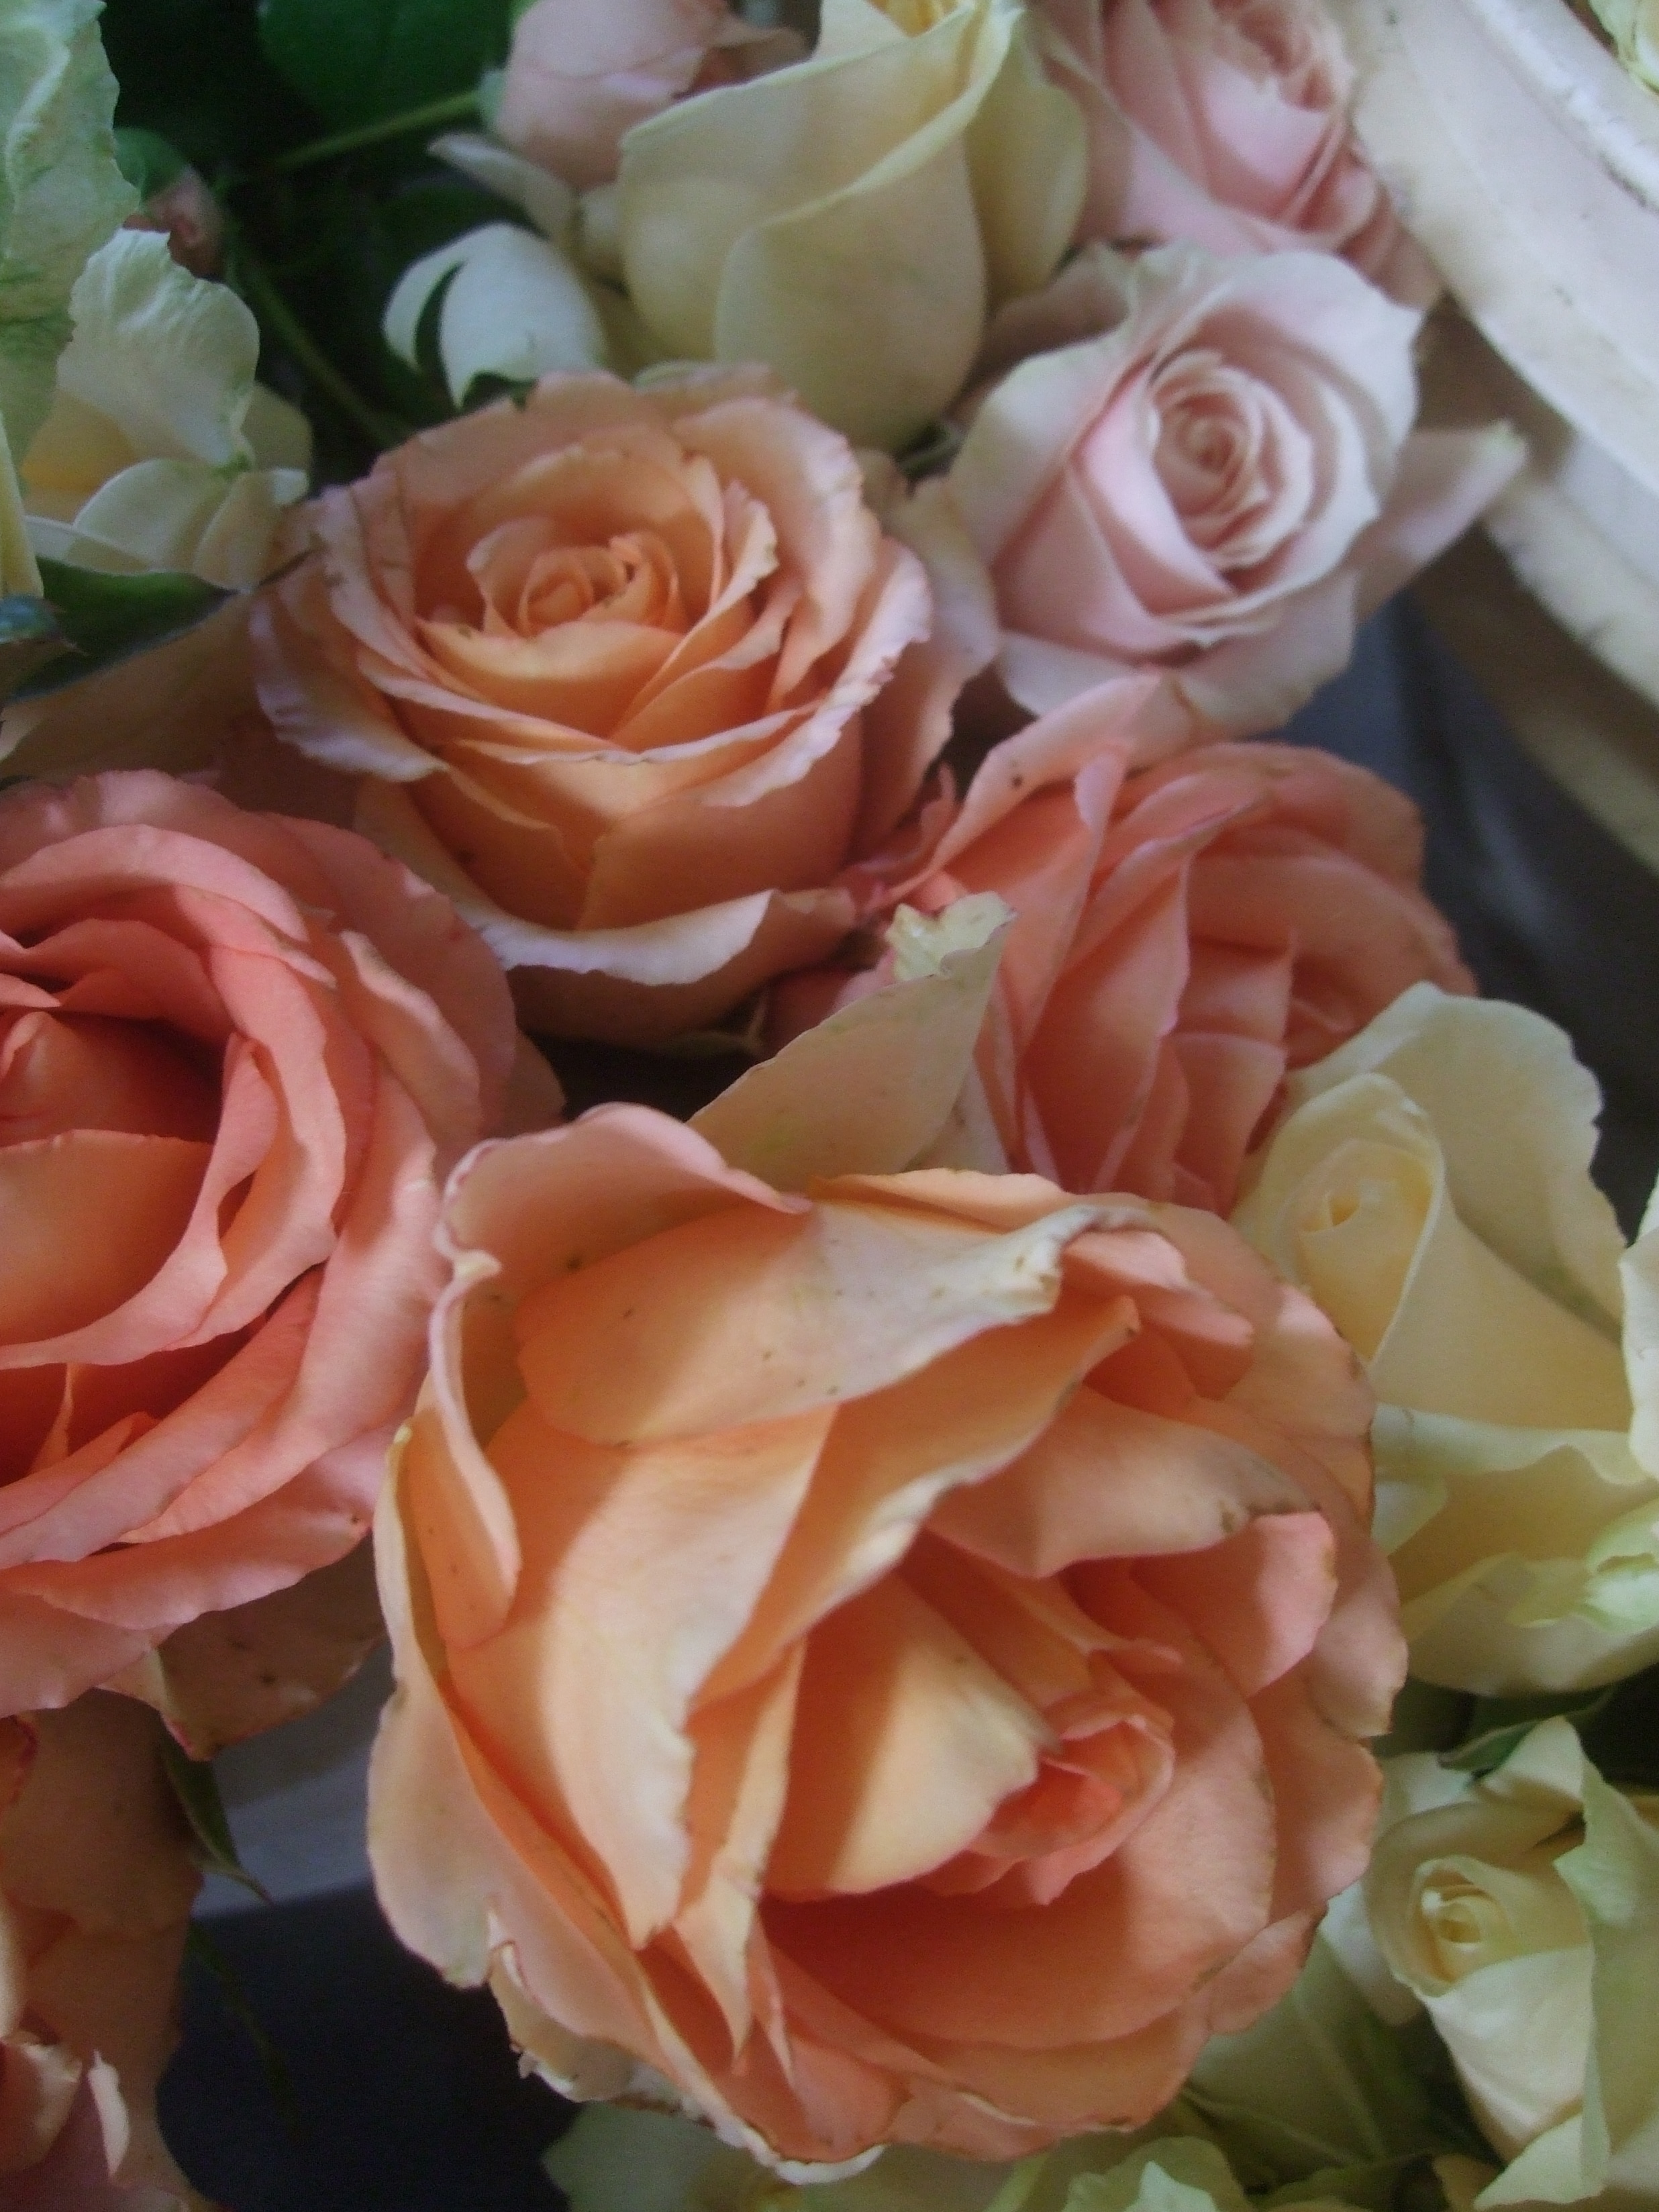 caramel antike, peach avalanche, and maria therese rose